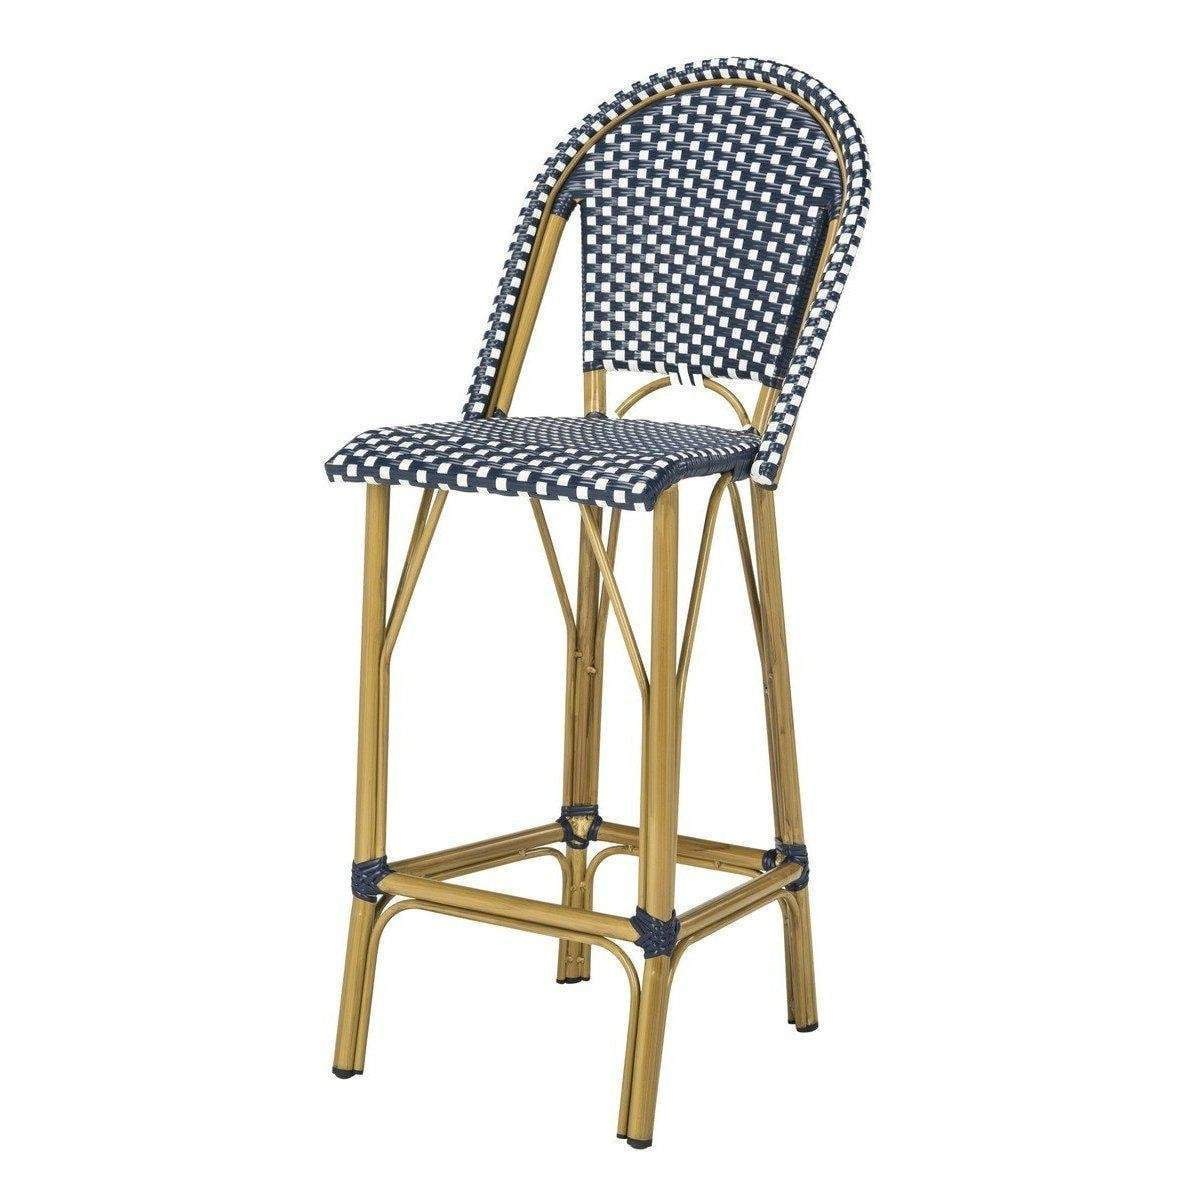 Wondrous Ford Indoor Outdoor Stacking French Bistro Bar Or Counter Stool Navy White Theyellowbook Wood Chair Design Ideas Theyellowbookinfo